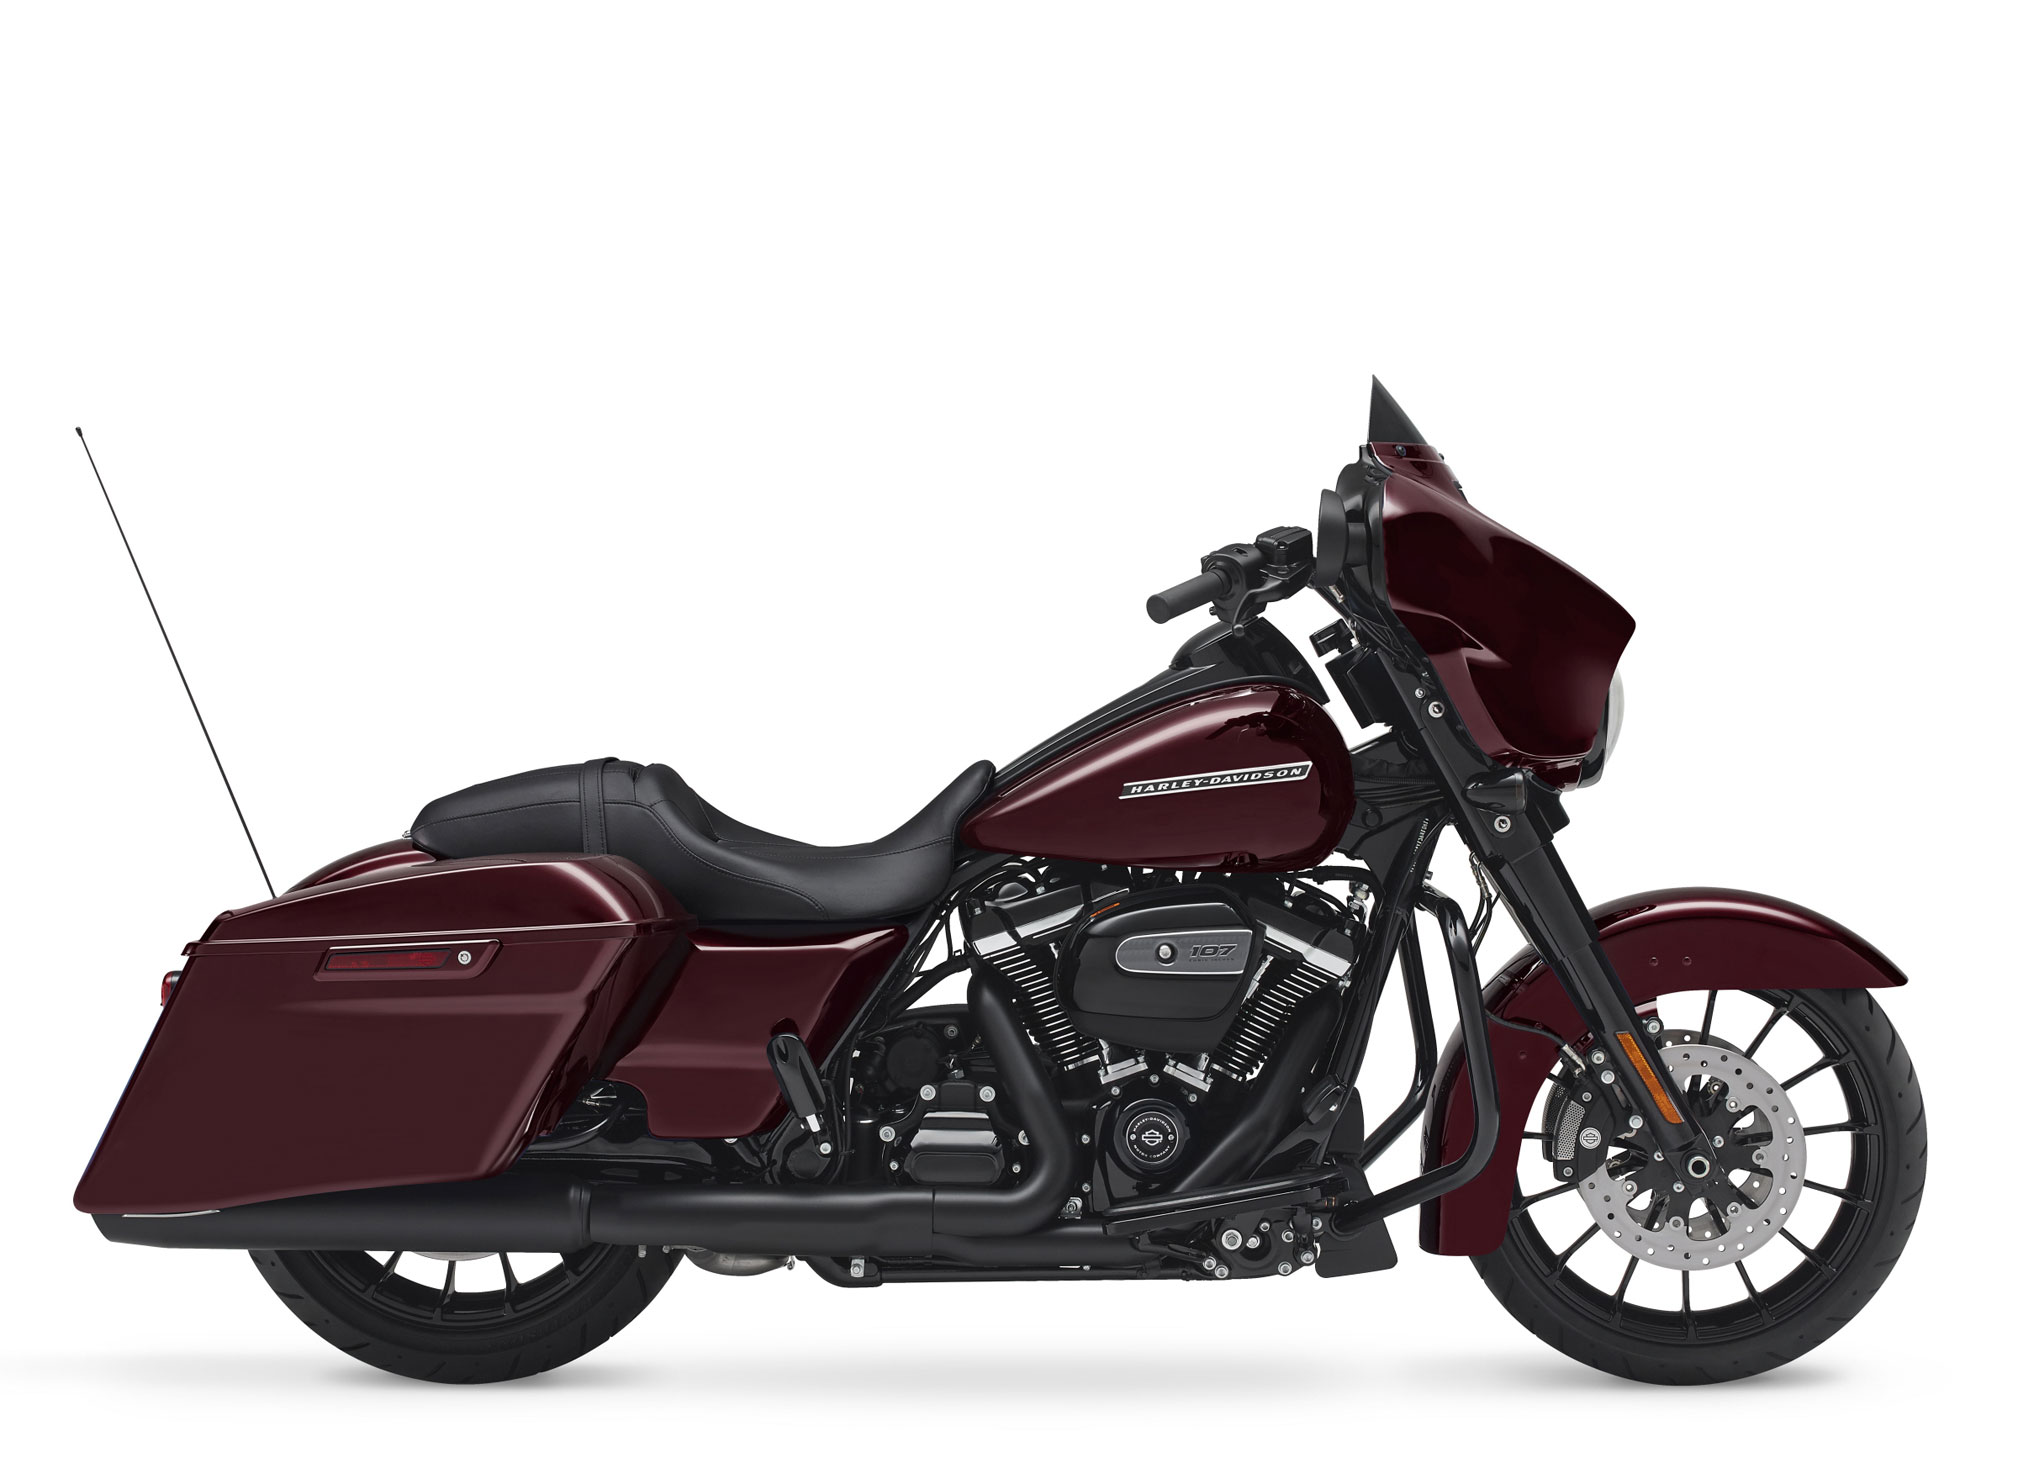 2018 Harley Davidson Street Glide Special Review Total Motorcycle